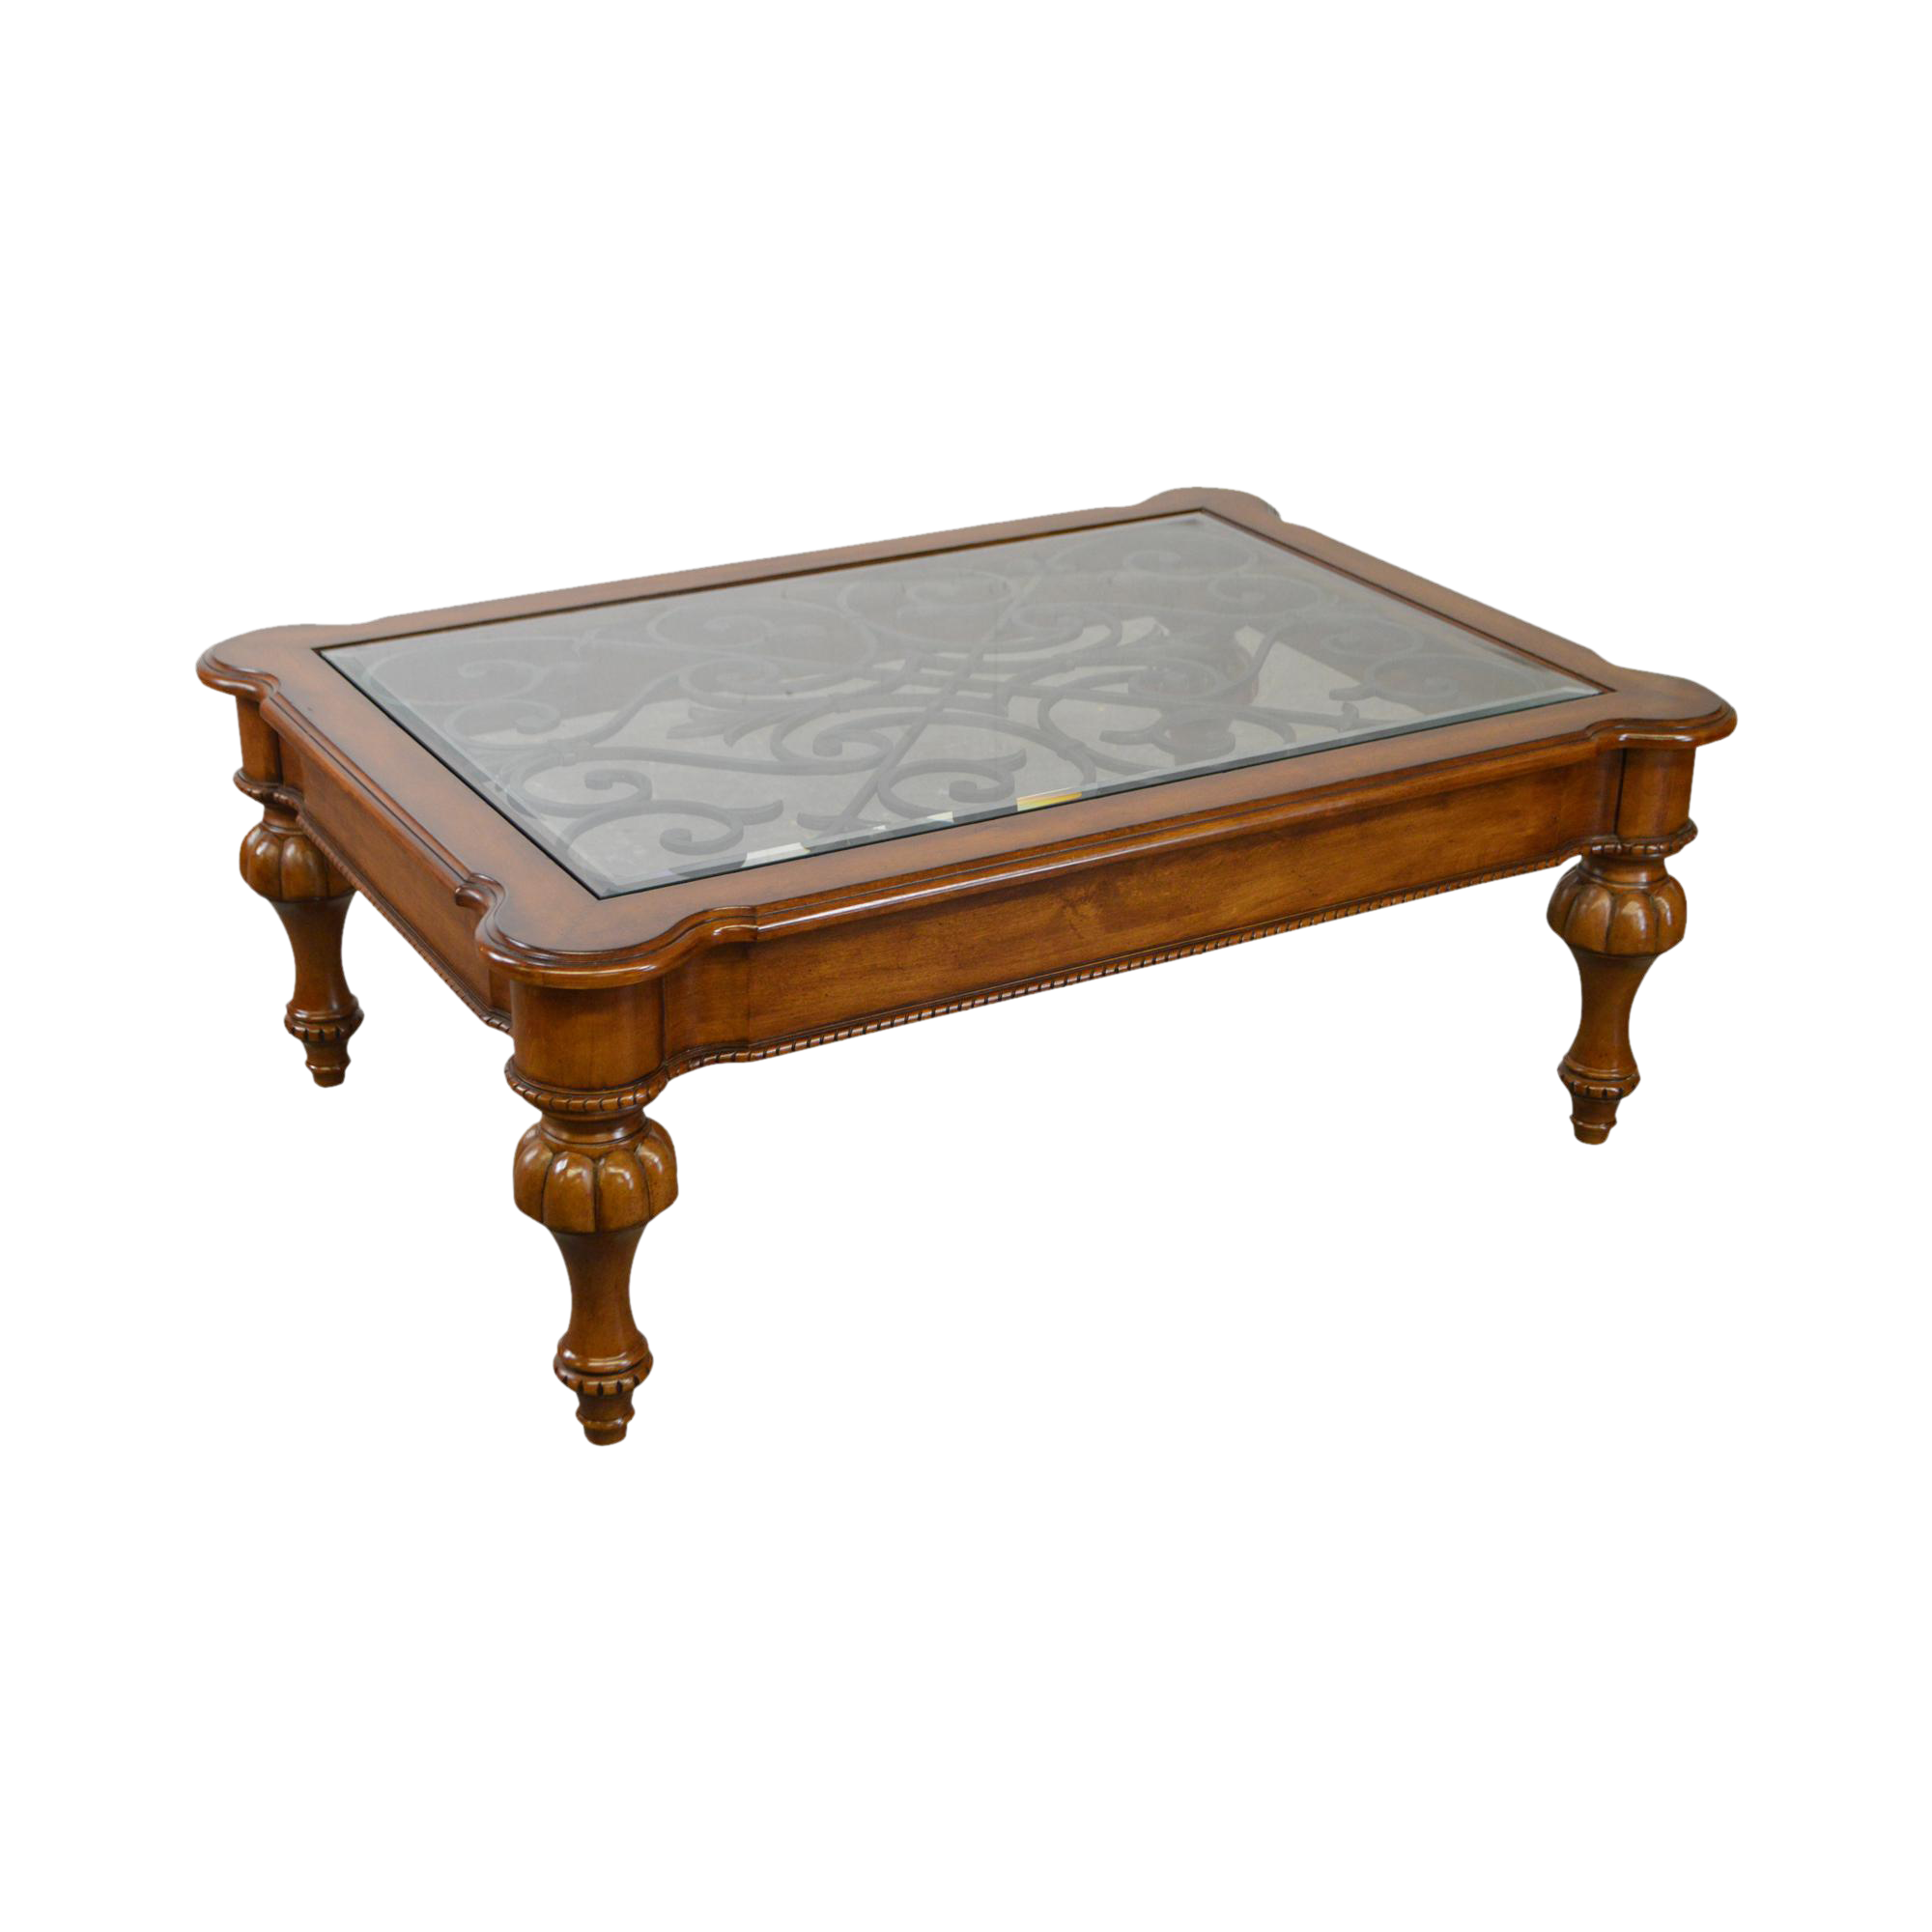 Ethan allen french country style glass scrolled iron top coffee ethan allen french country style glass scrolled iron top coffee table chairish geotapseo Image collections